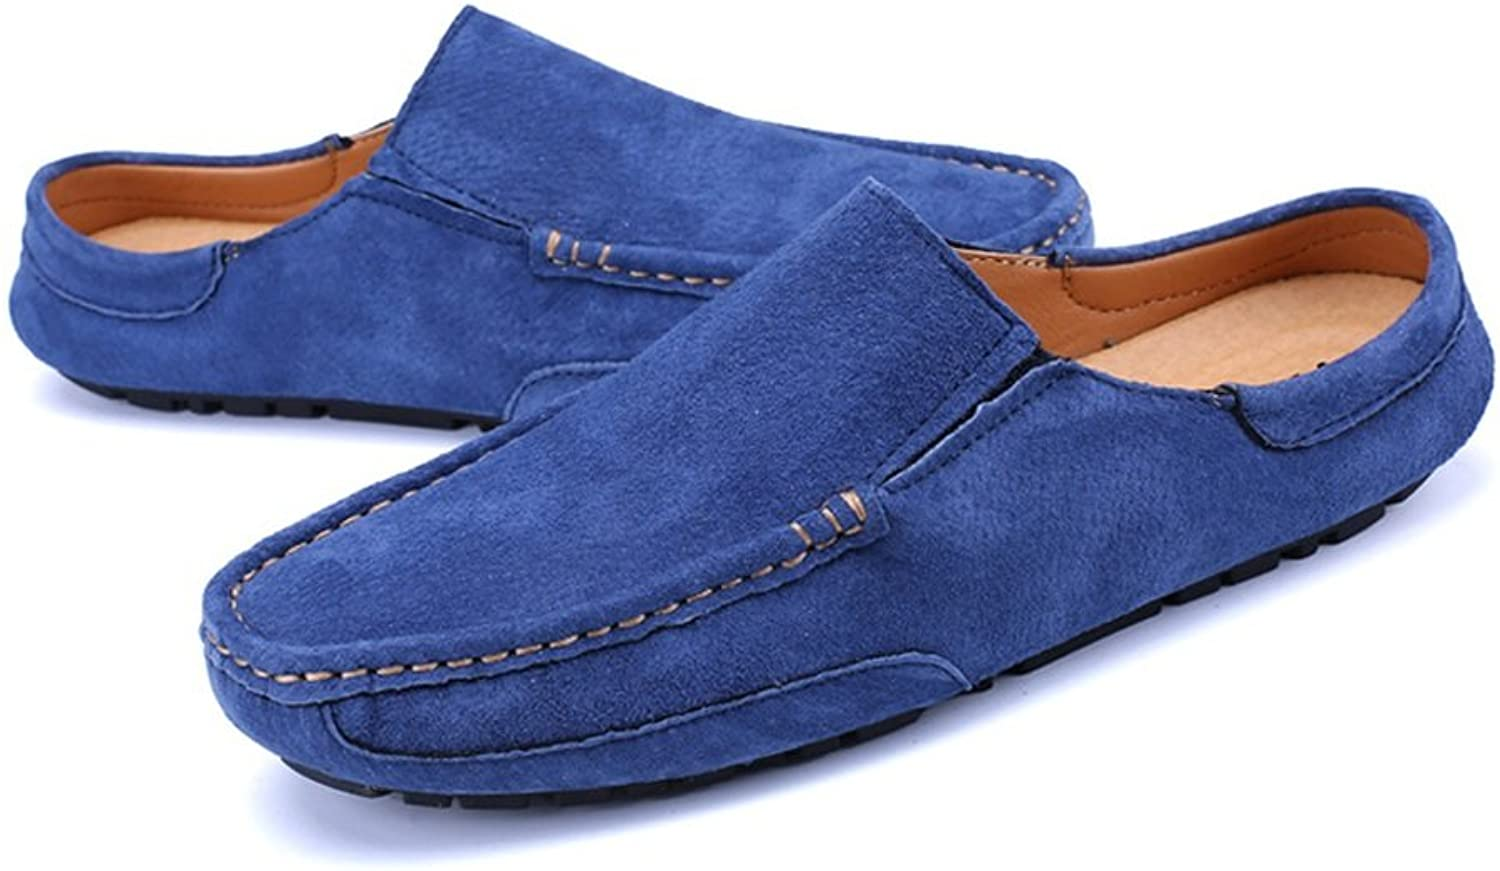 Men's Driving Loafers Genuine Leather Casual Slippers Slip-On Boat Mules Cricket shoes